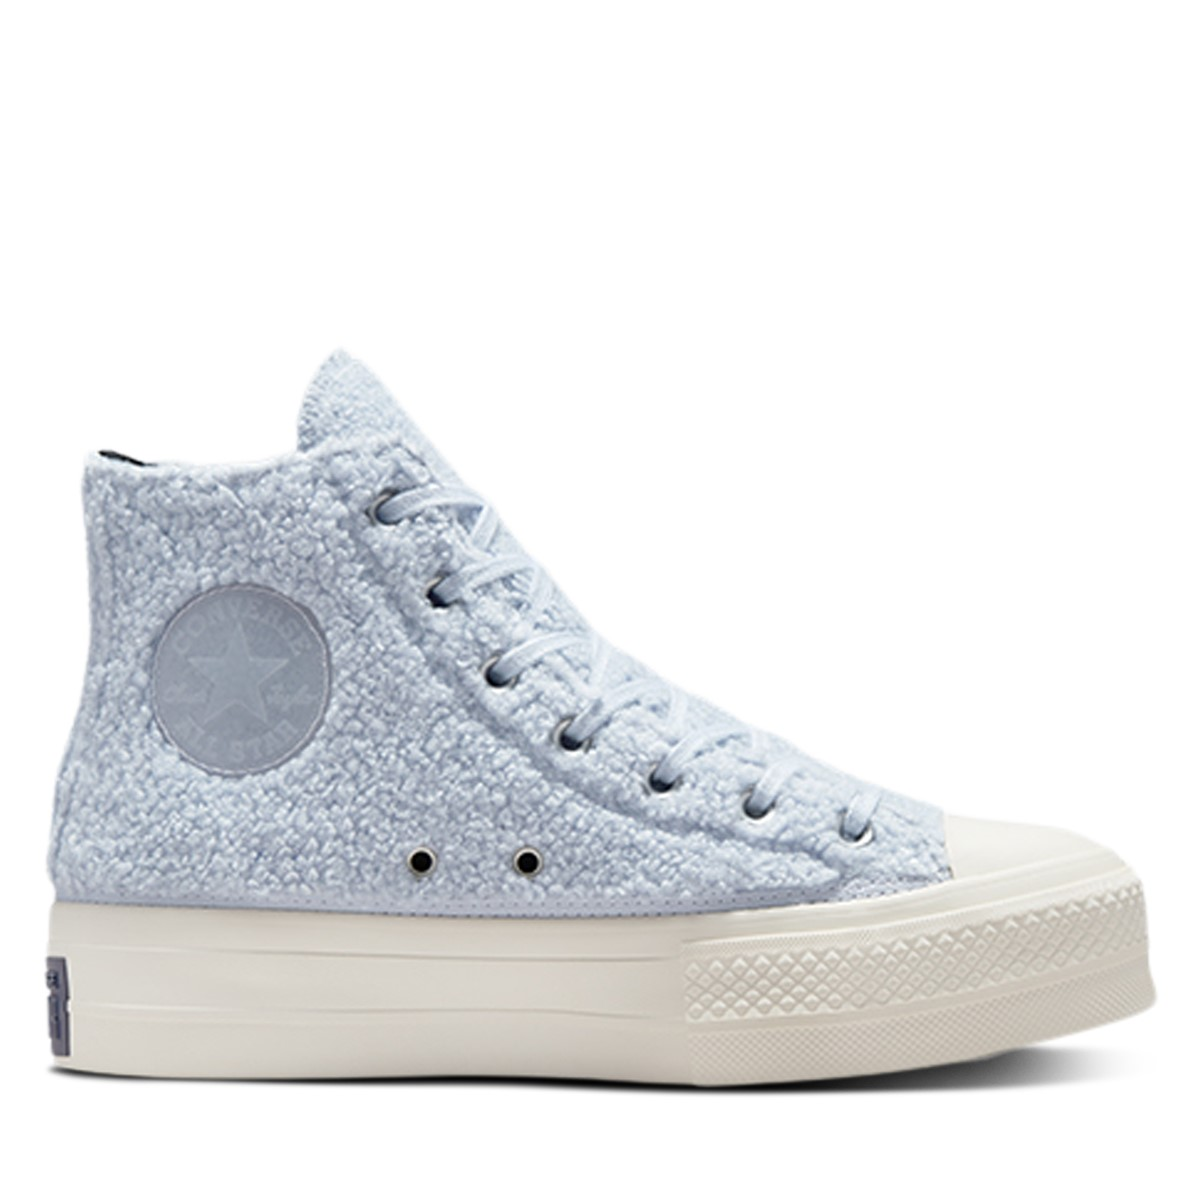 Women's Chuck taylor All Star Platform High top Sneakers in Baby Blue